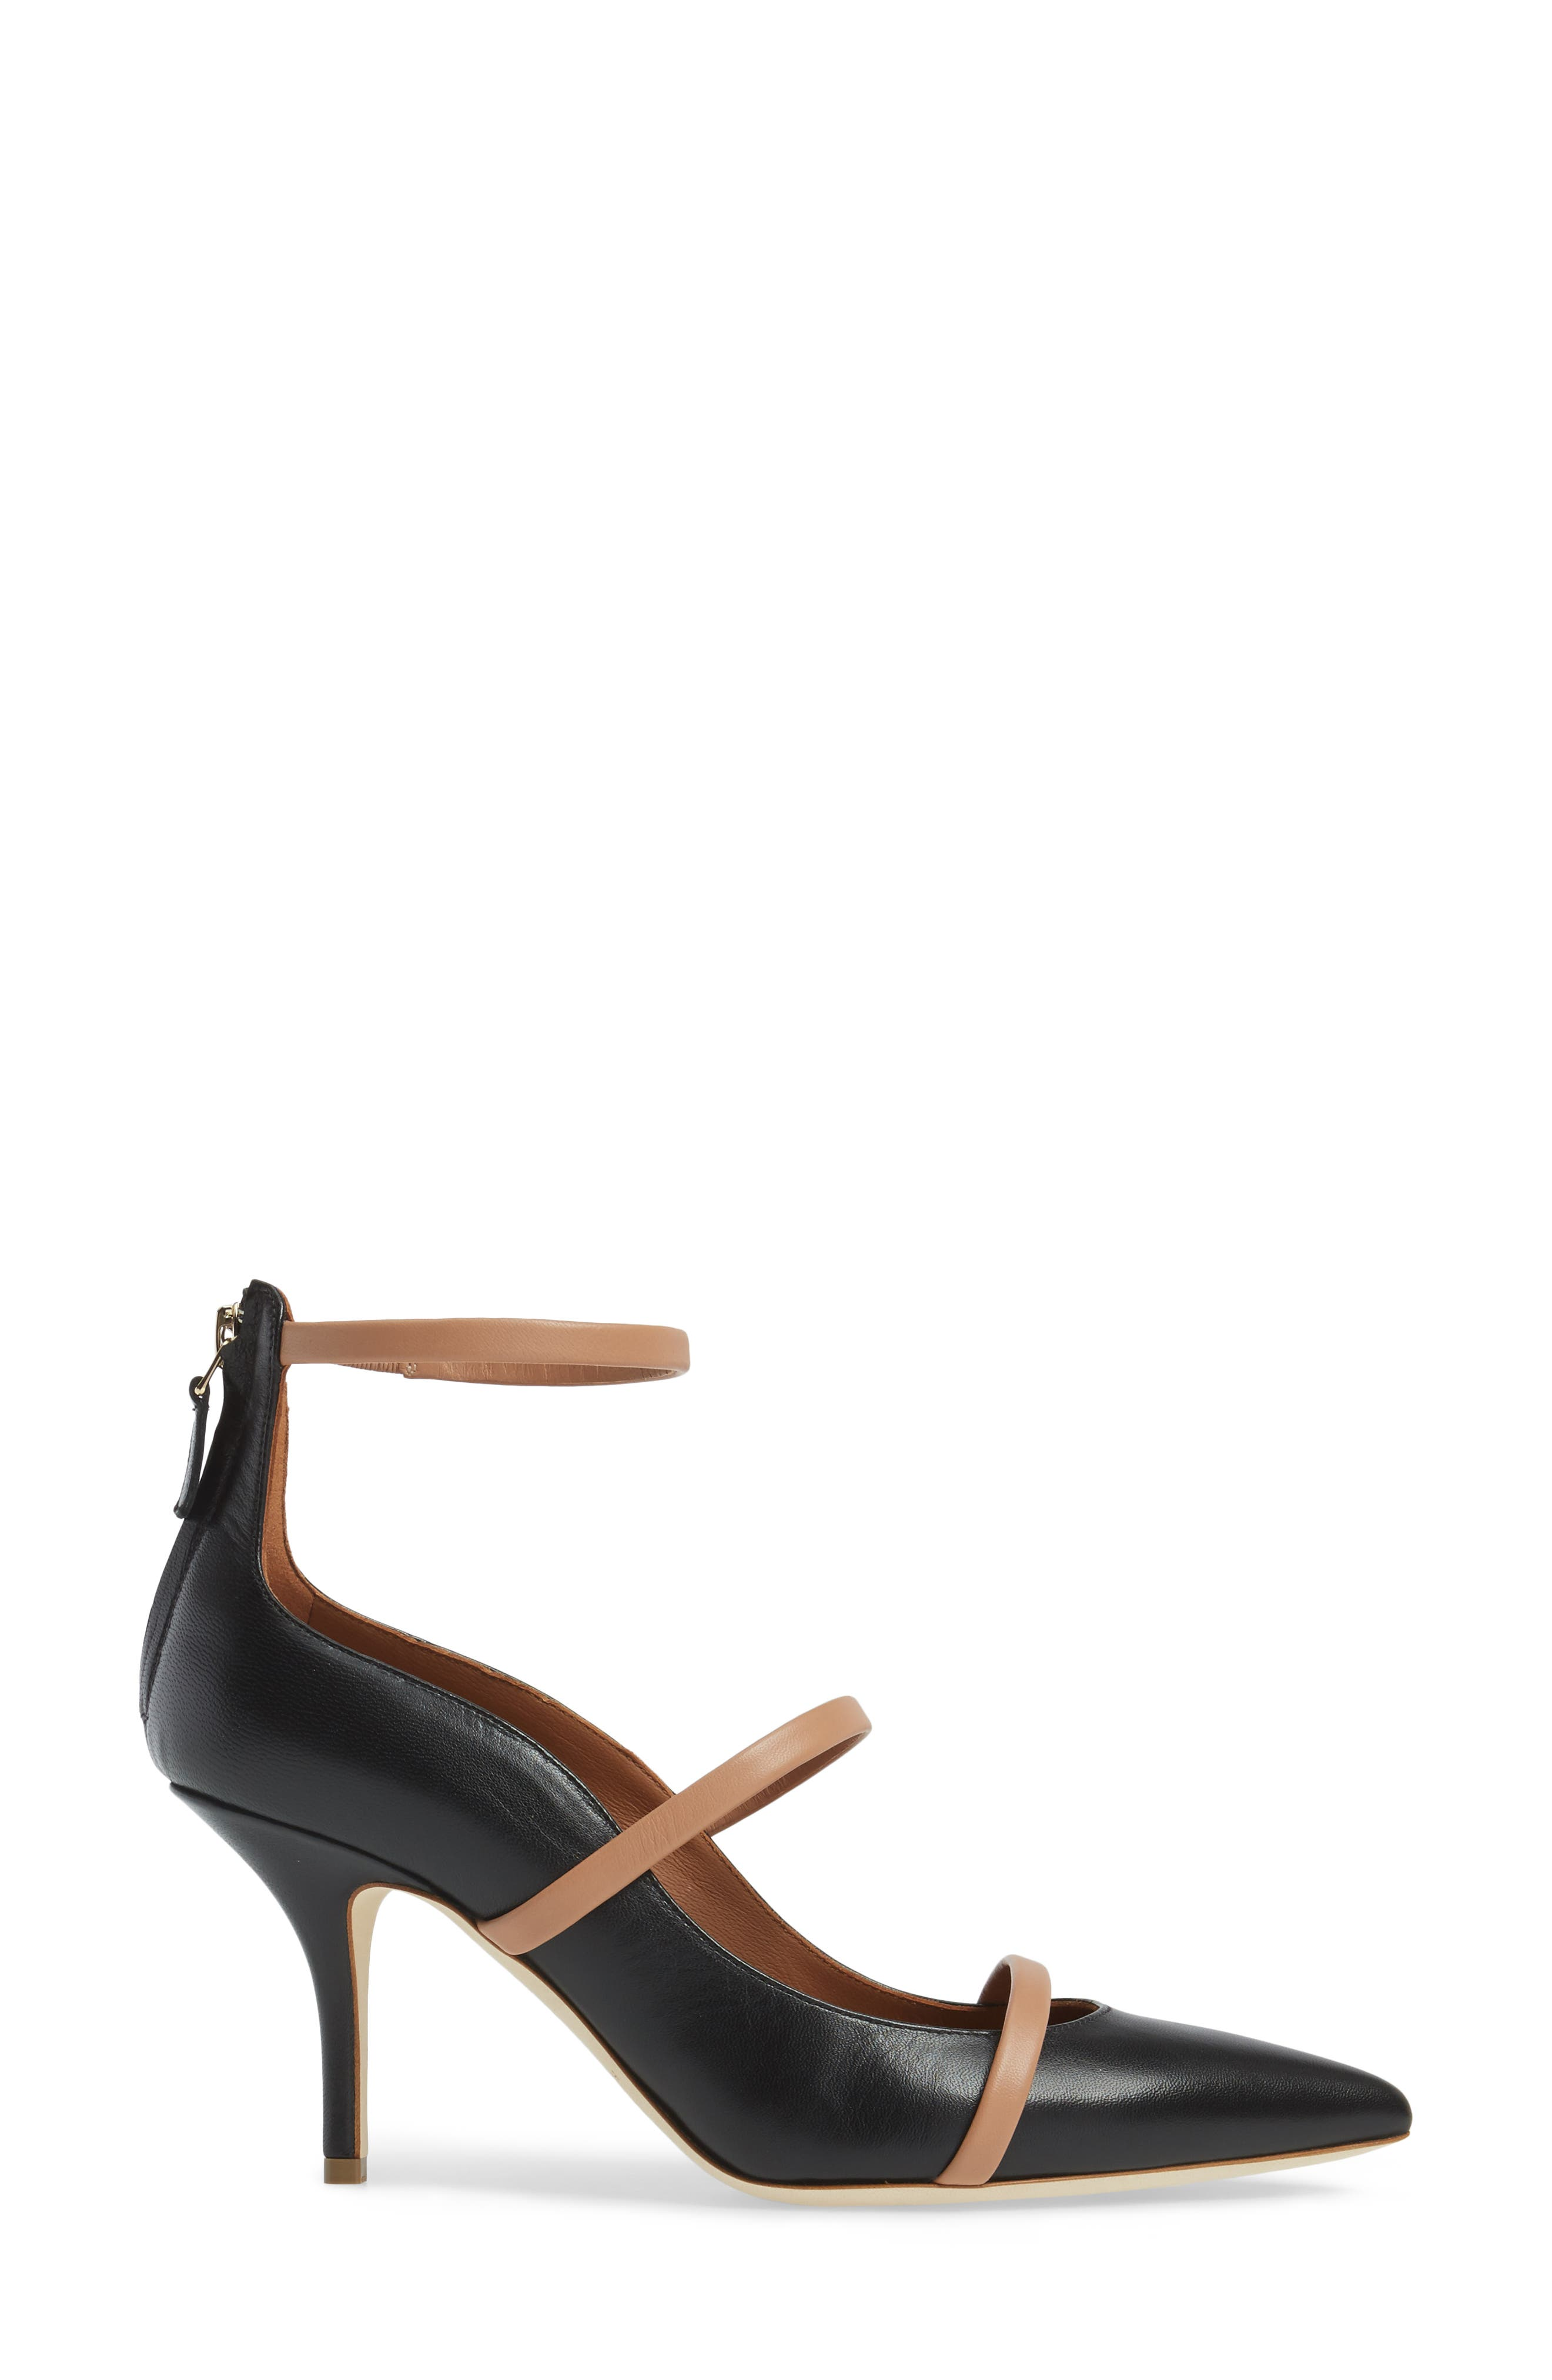 Robyn Ankle Strap Pump,                             Alternate thumbnail 3, color,                             BLACK/ NUDE